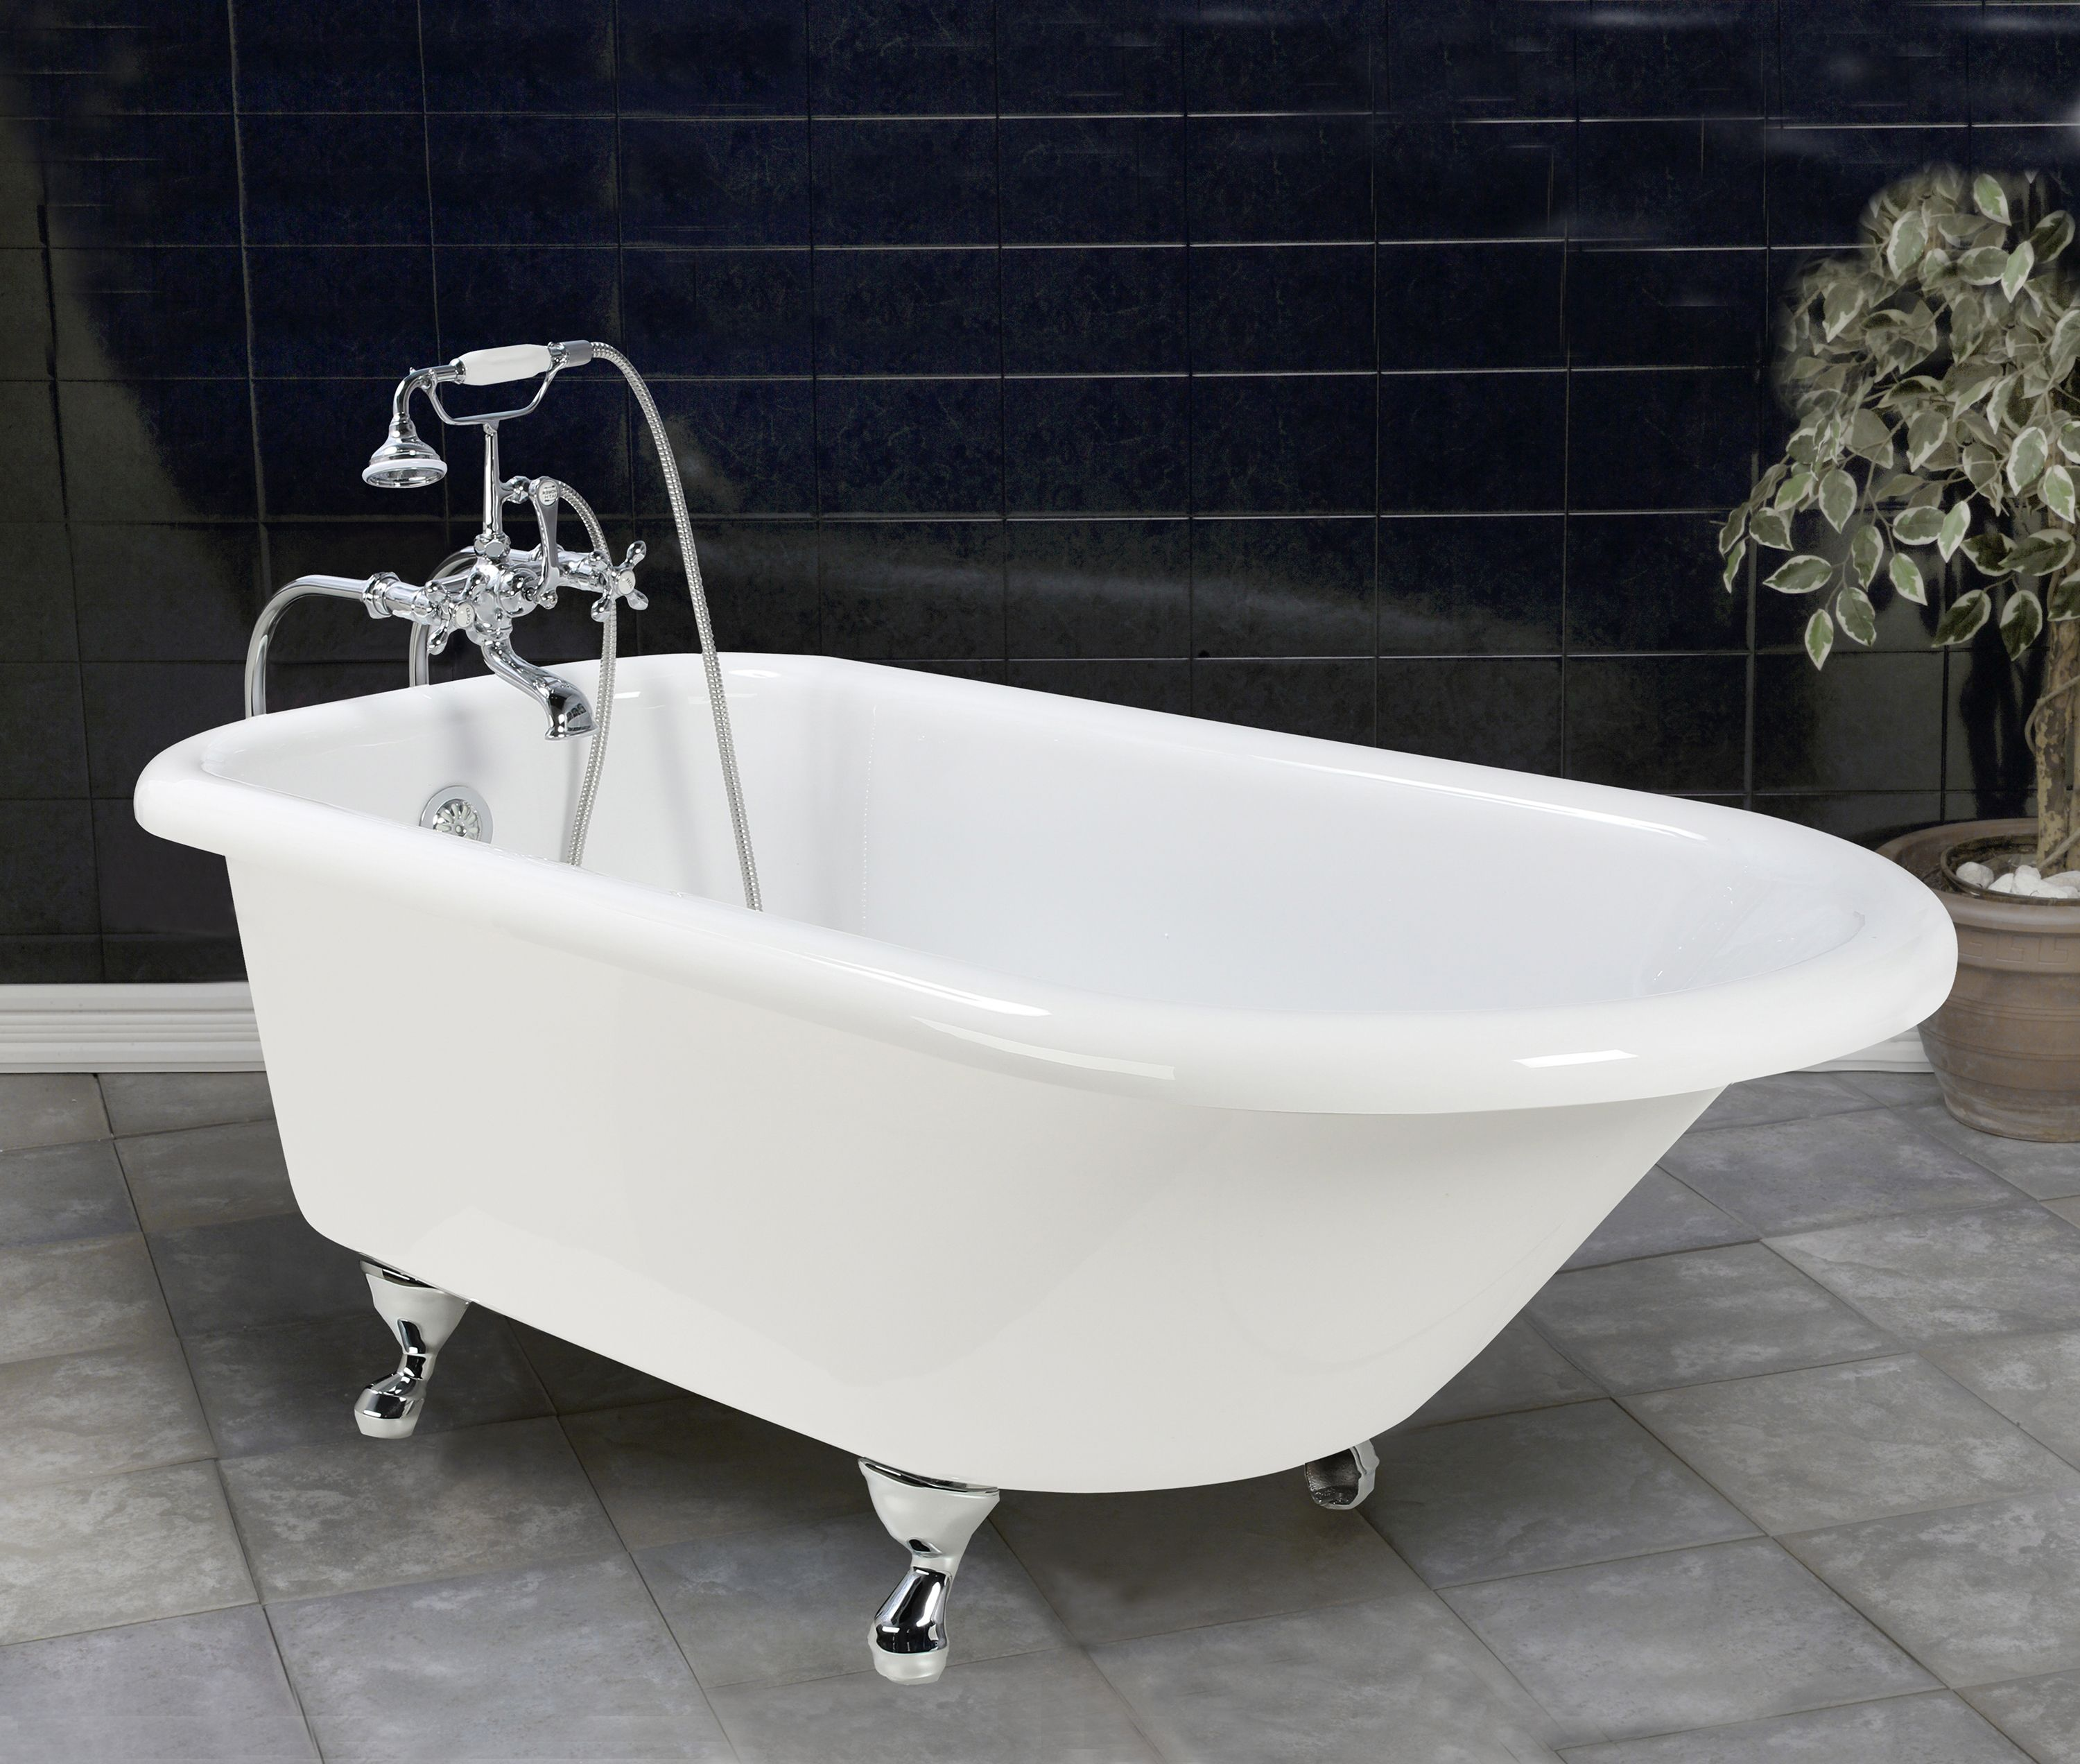 Old Bathtubs | Home / Products / Chedworth 5' Old ...